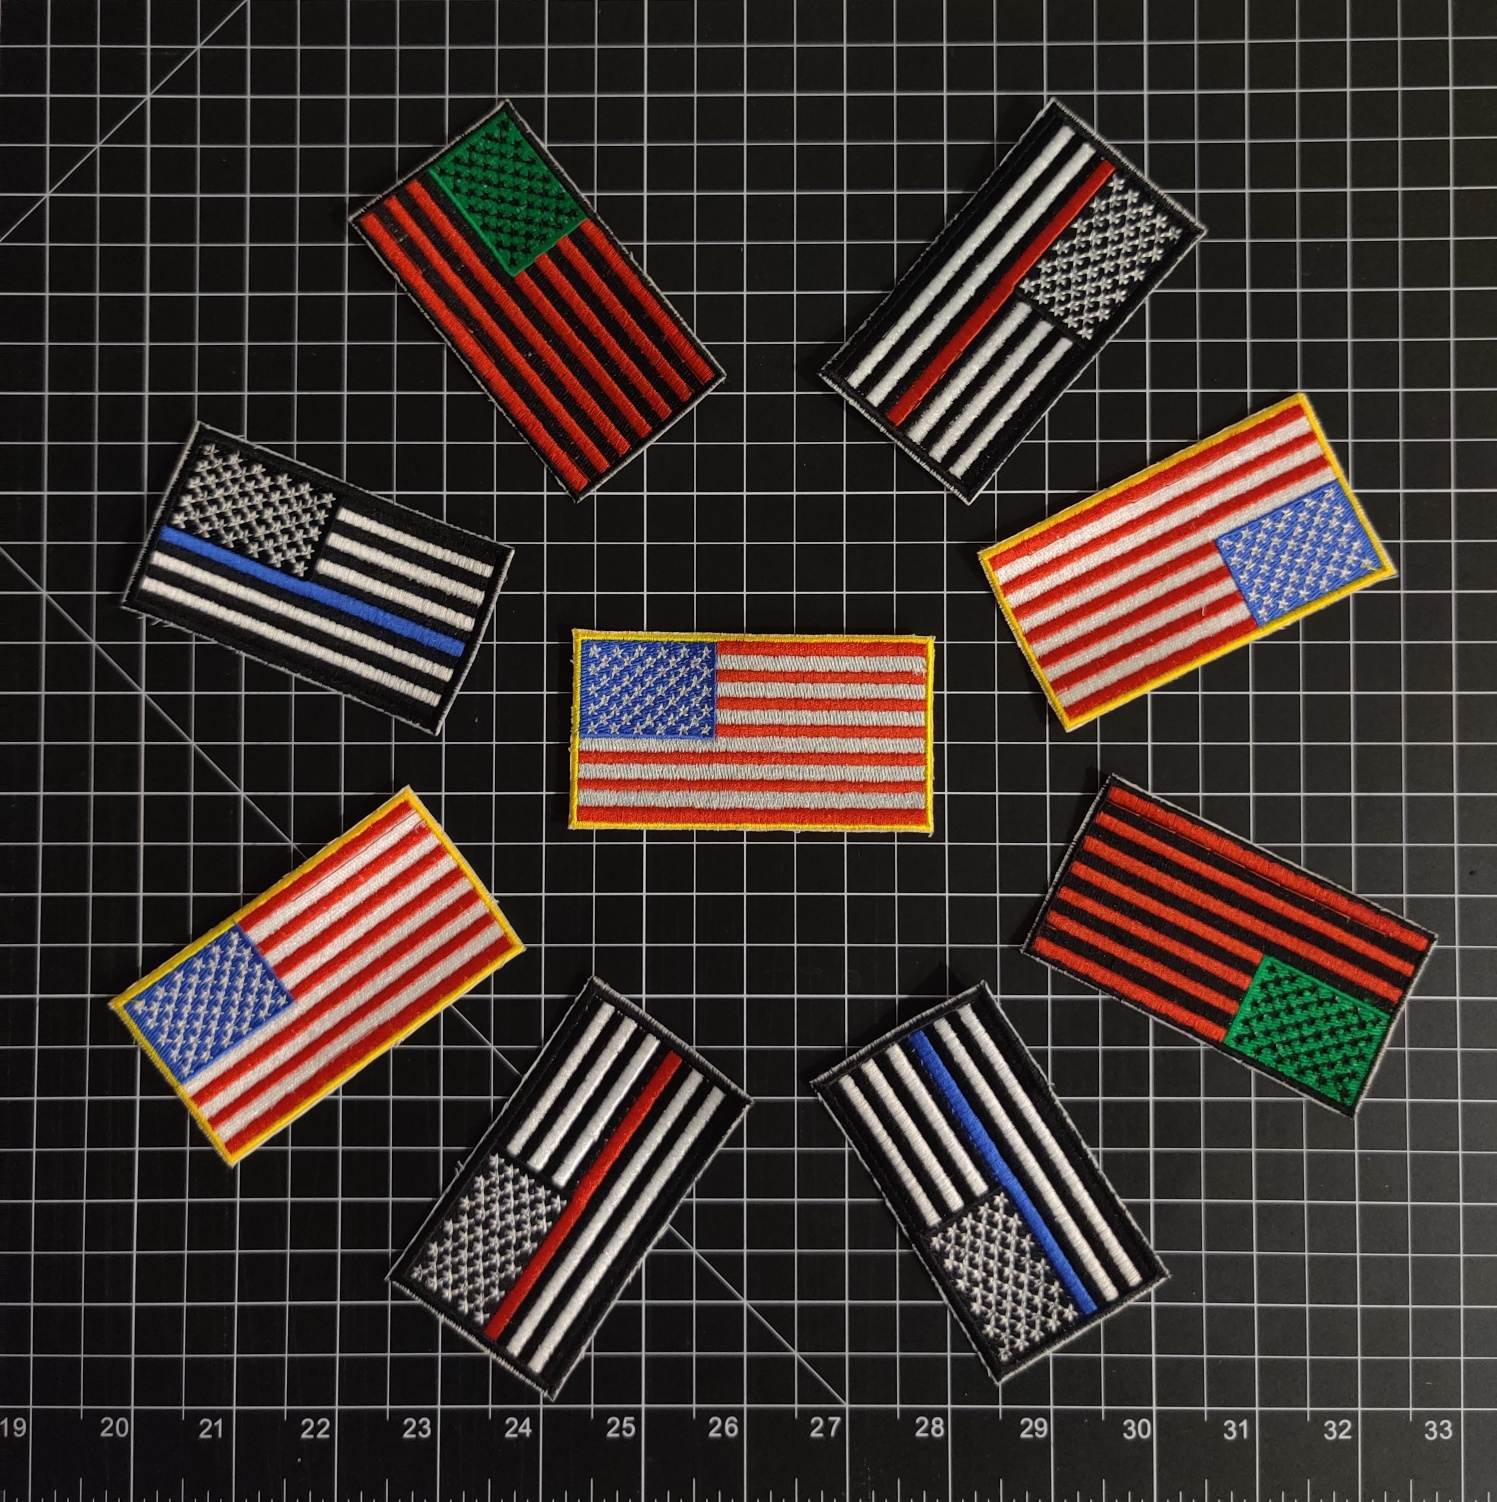 FLAG PTCHES